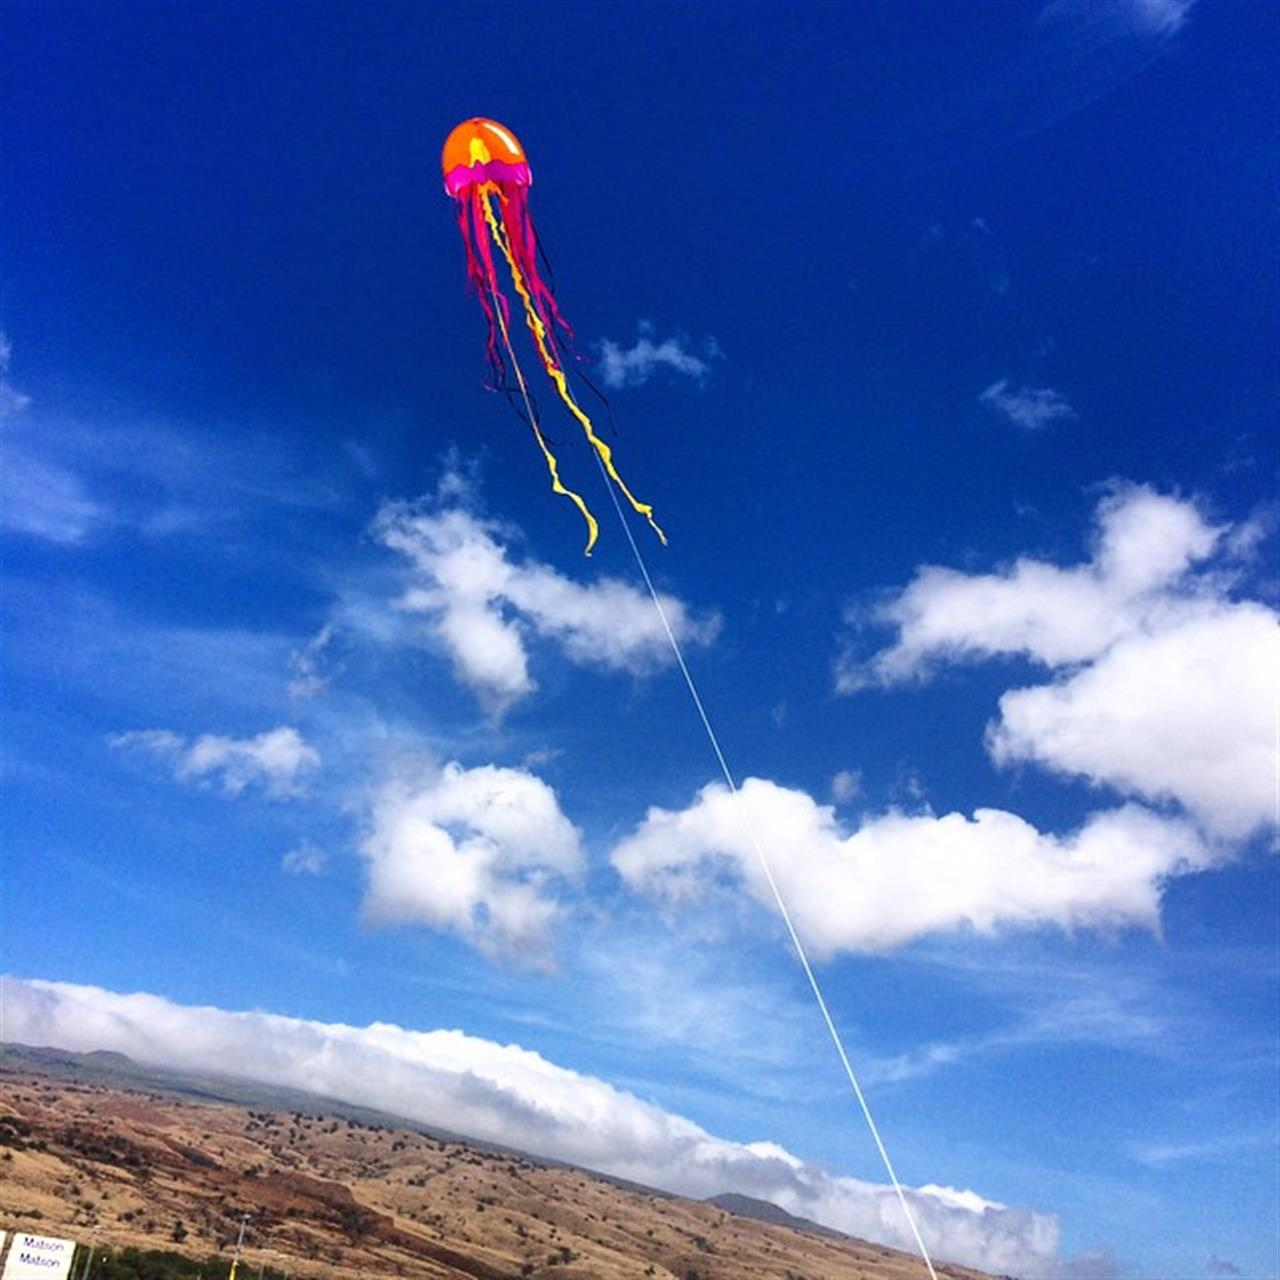 Flying kites at the beach today! #likealittlekid #beingbrooke #hawaiilife #beemary #LSD #leadingRElocal